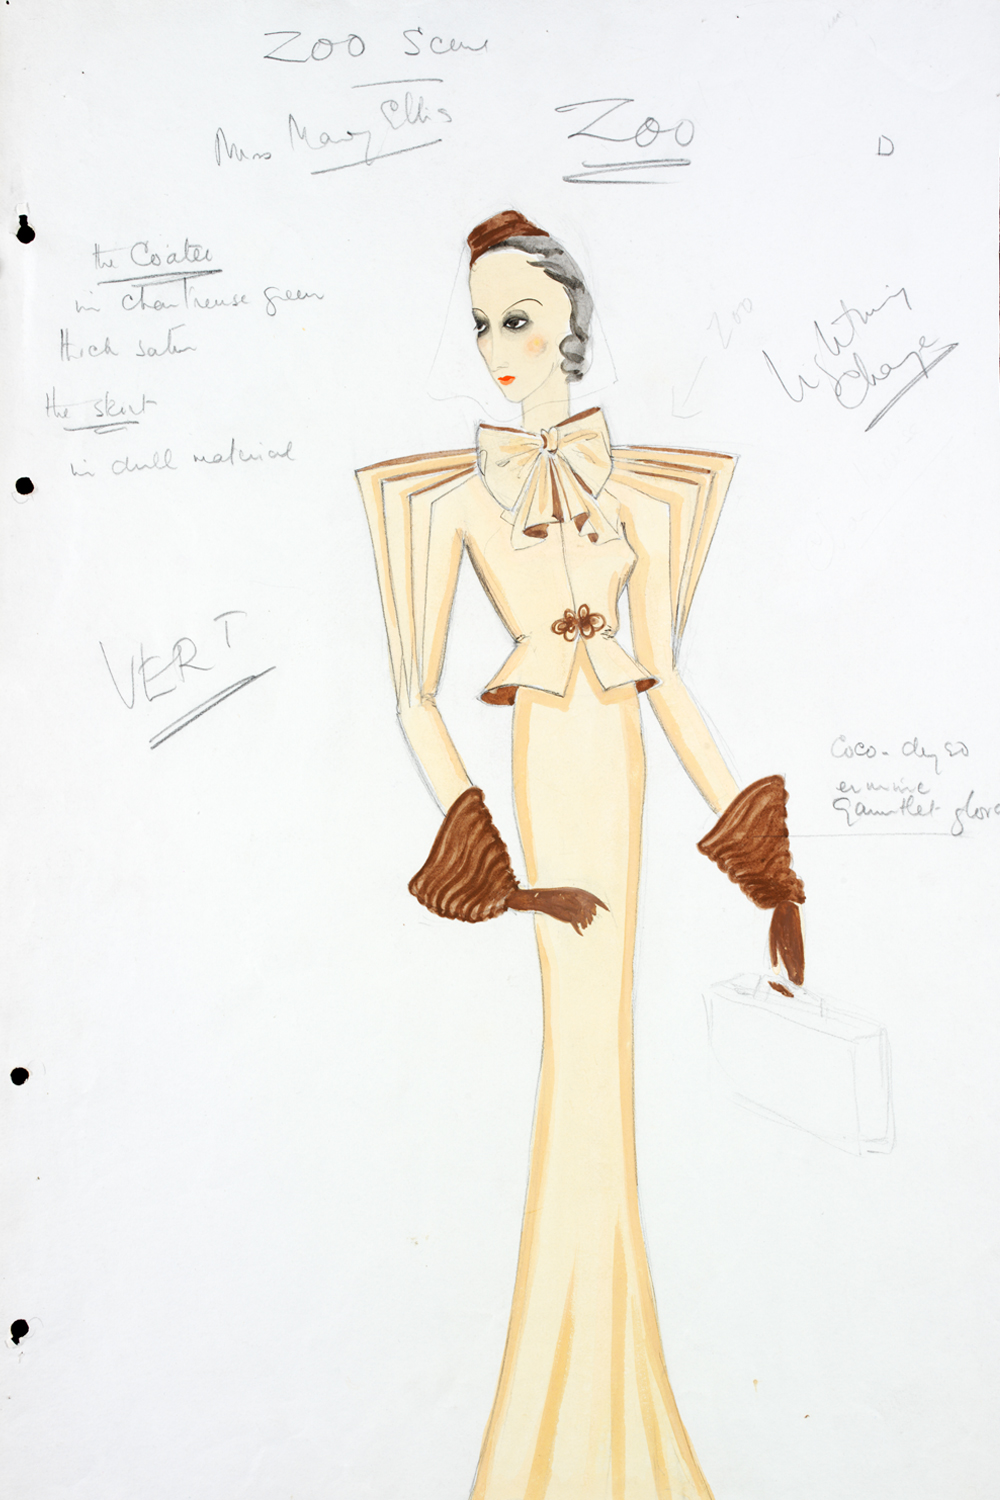 Fashion Design: Fashion Drawing And Illustration In The 20th Century